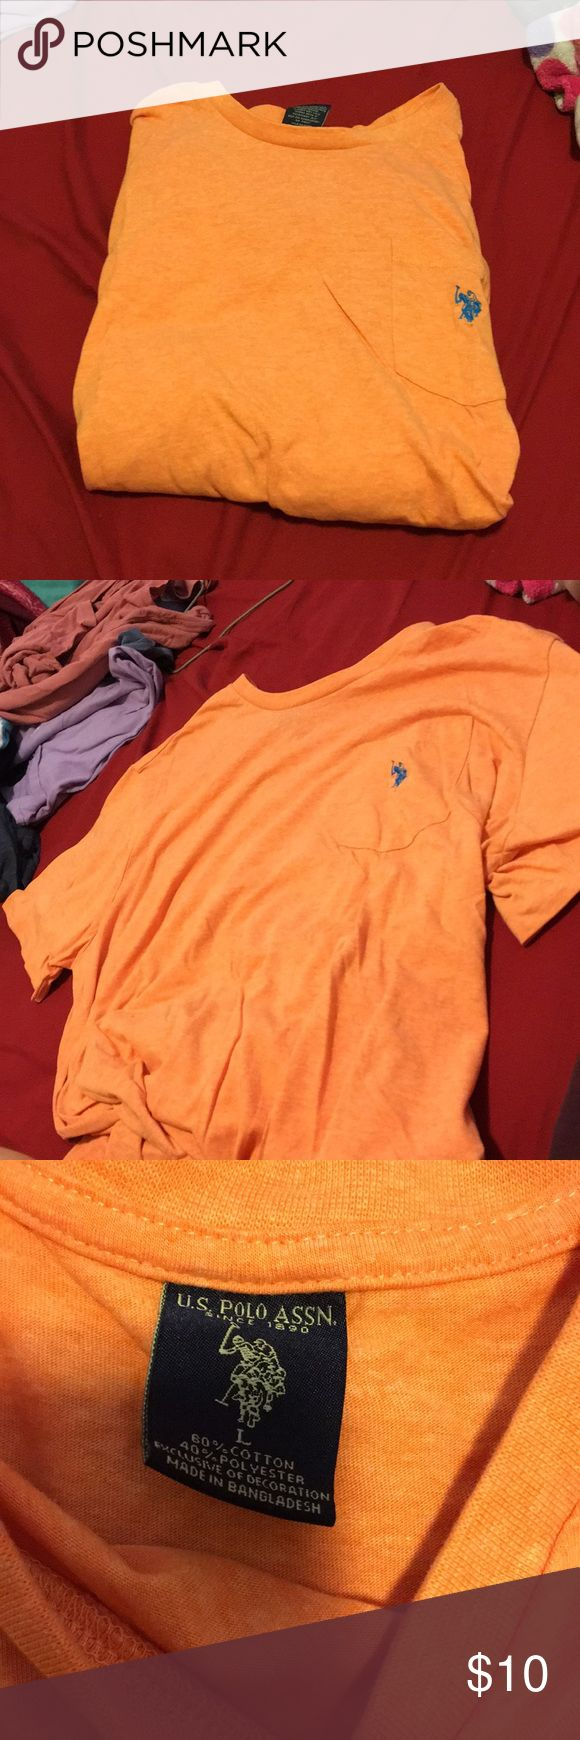 Men's polo shirt Bought it, ended up not liking the color on me. NWOT orange polo shirt with blue logo on the pocket. Men's large, short sleeve. U.S. Polo Assn. Shirts Tees - Short Sleeve